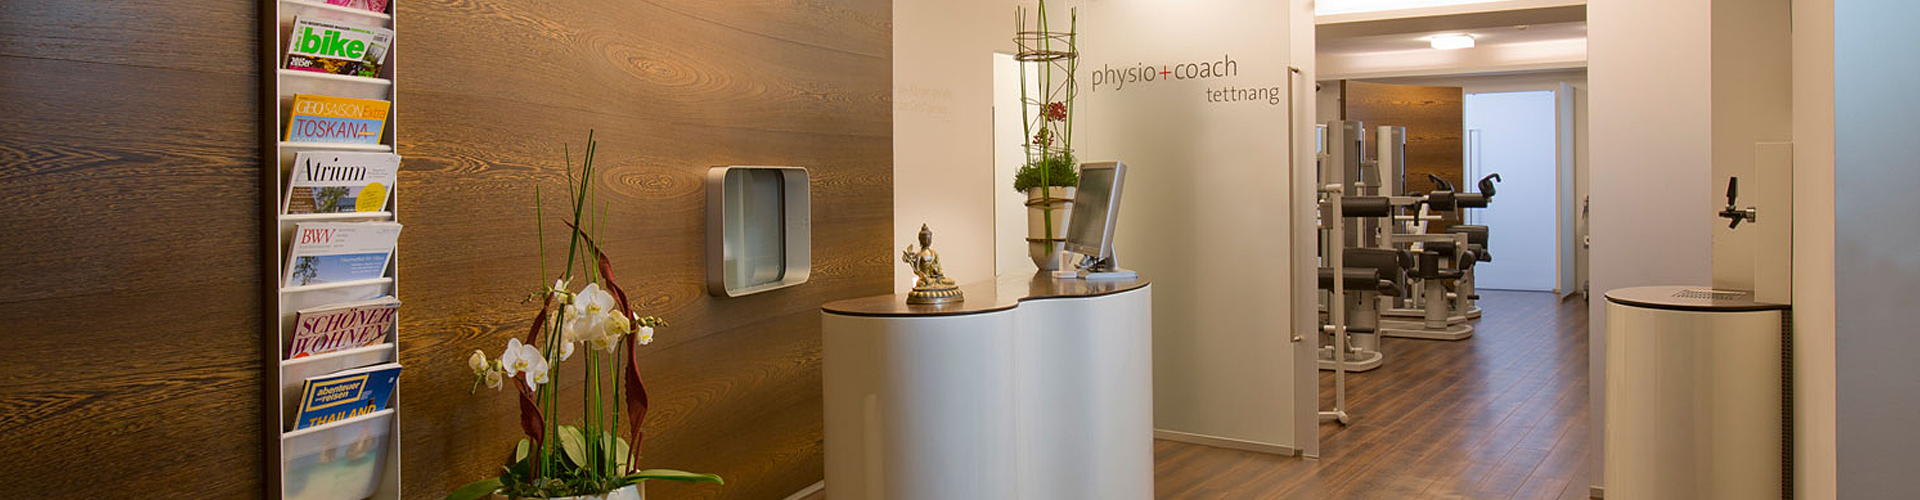 Physiocoach Tettnang